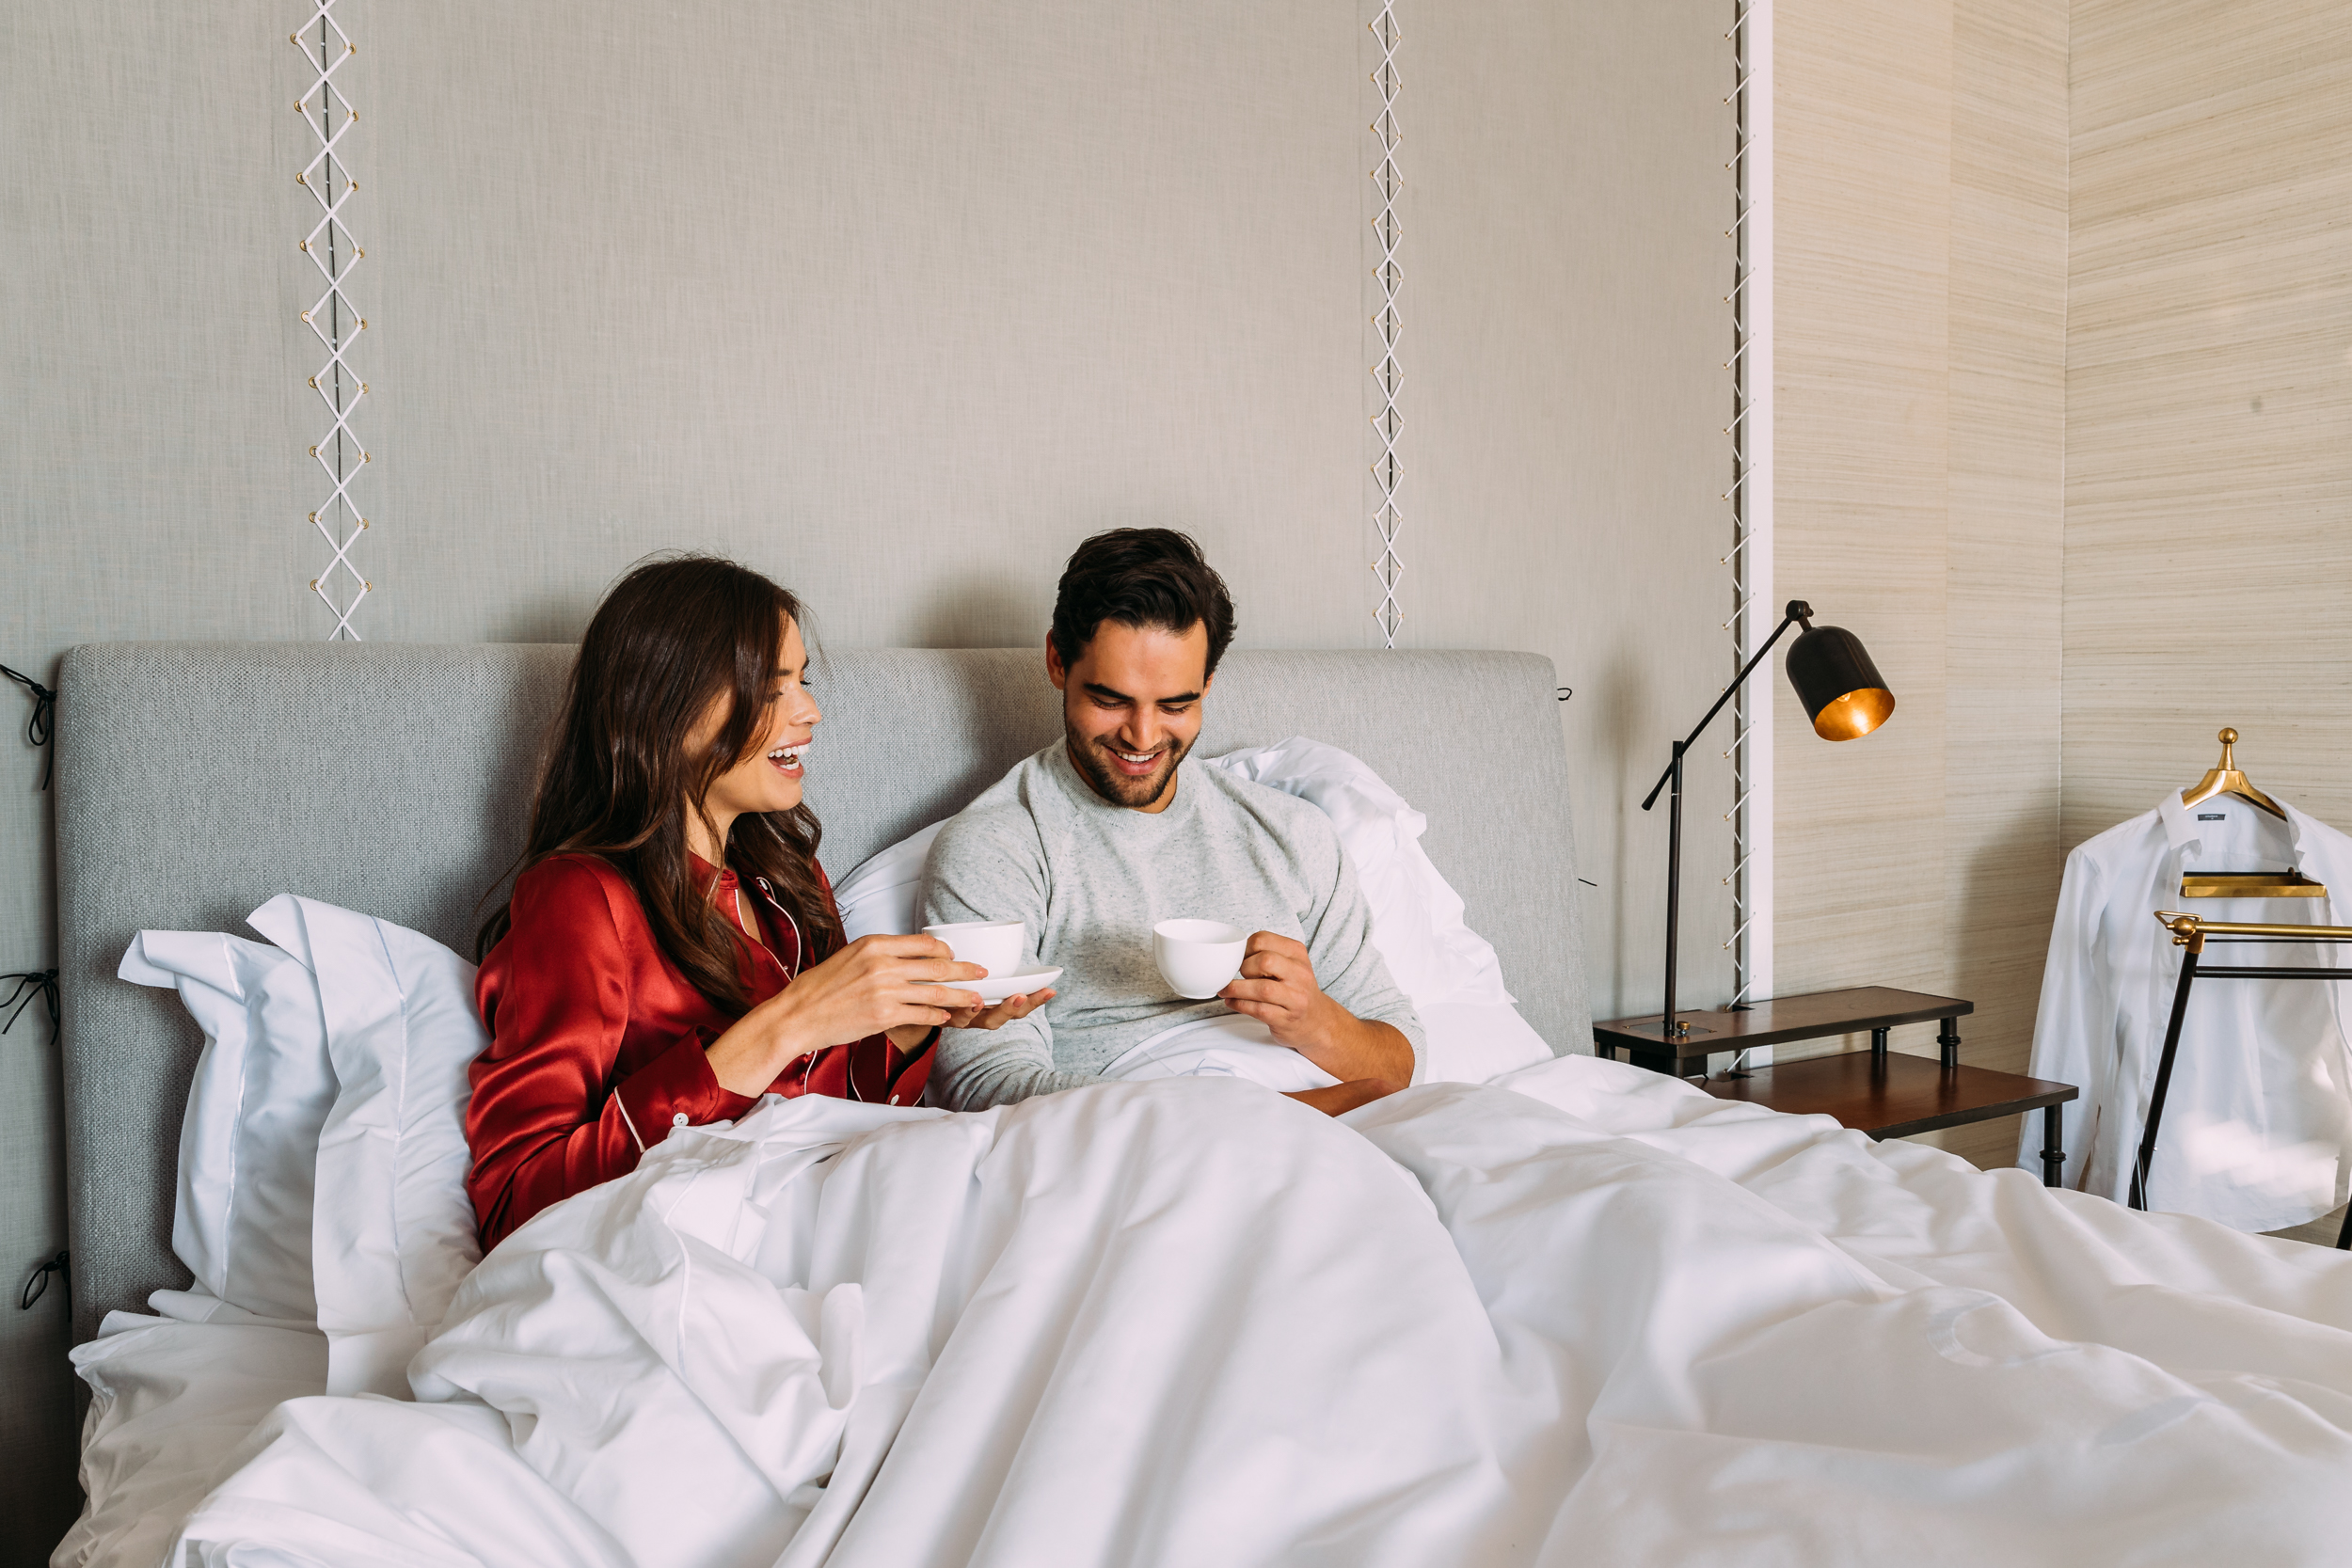 DG - Lifestyle Shoot May 2018 - 001 Couple in Bed.jpg